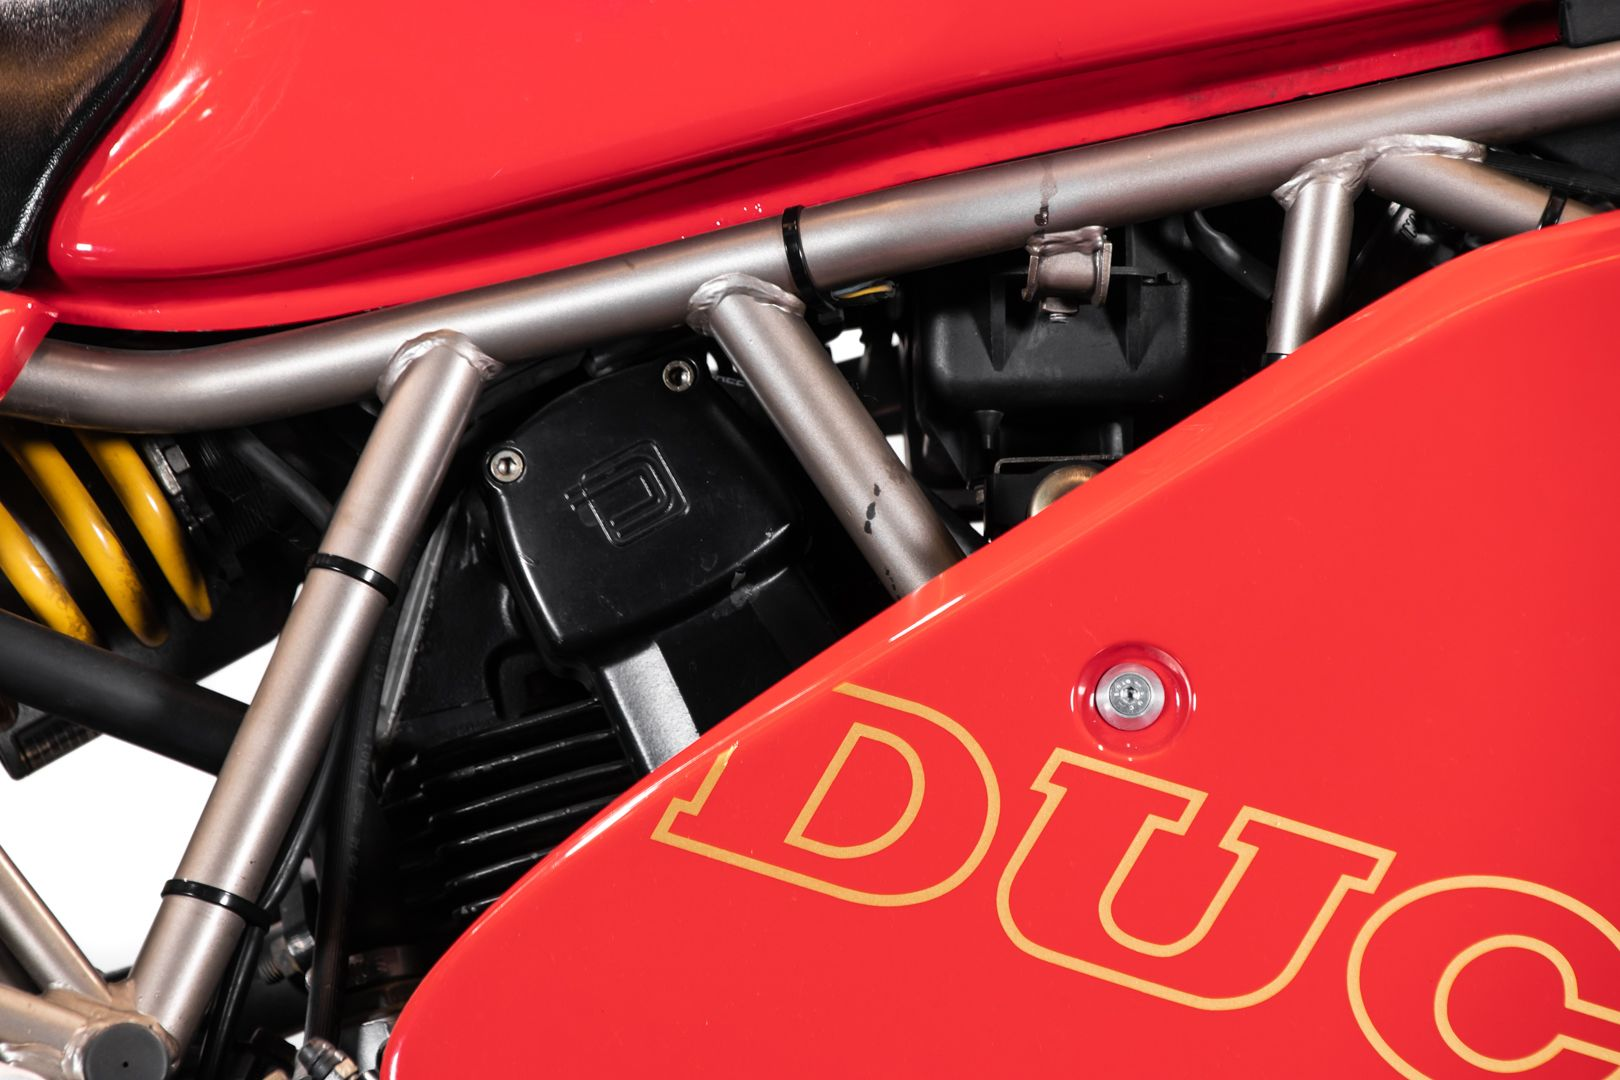 1993 Ducati 350 SS SuperSport 71392